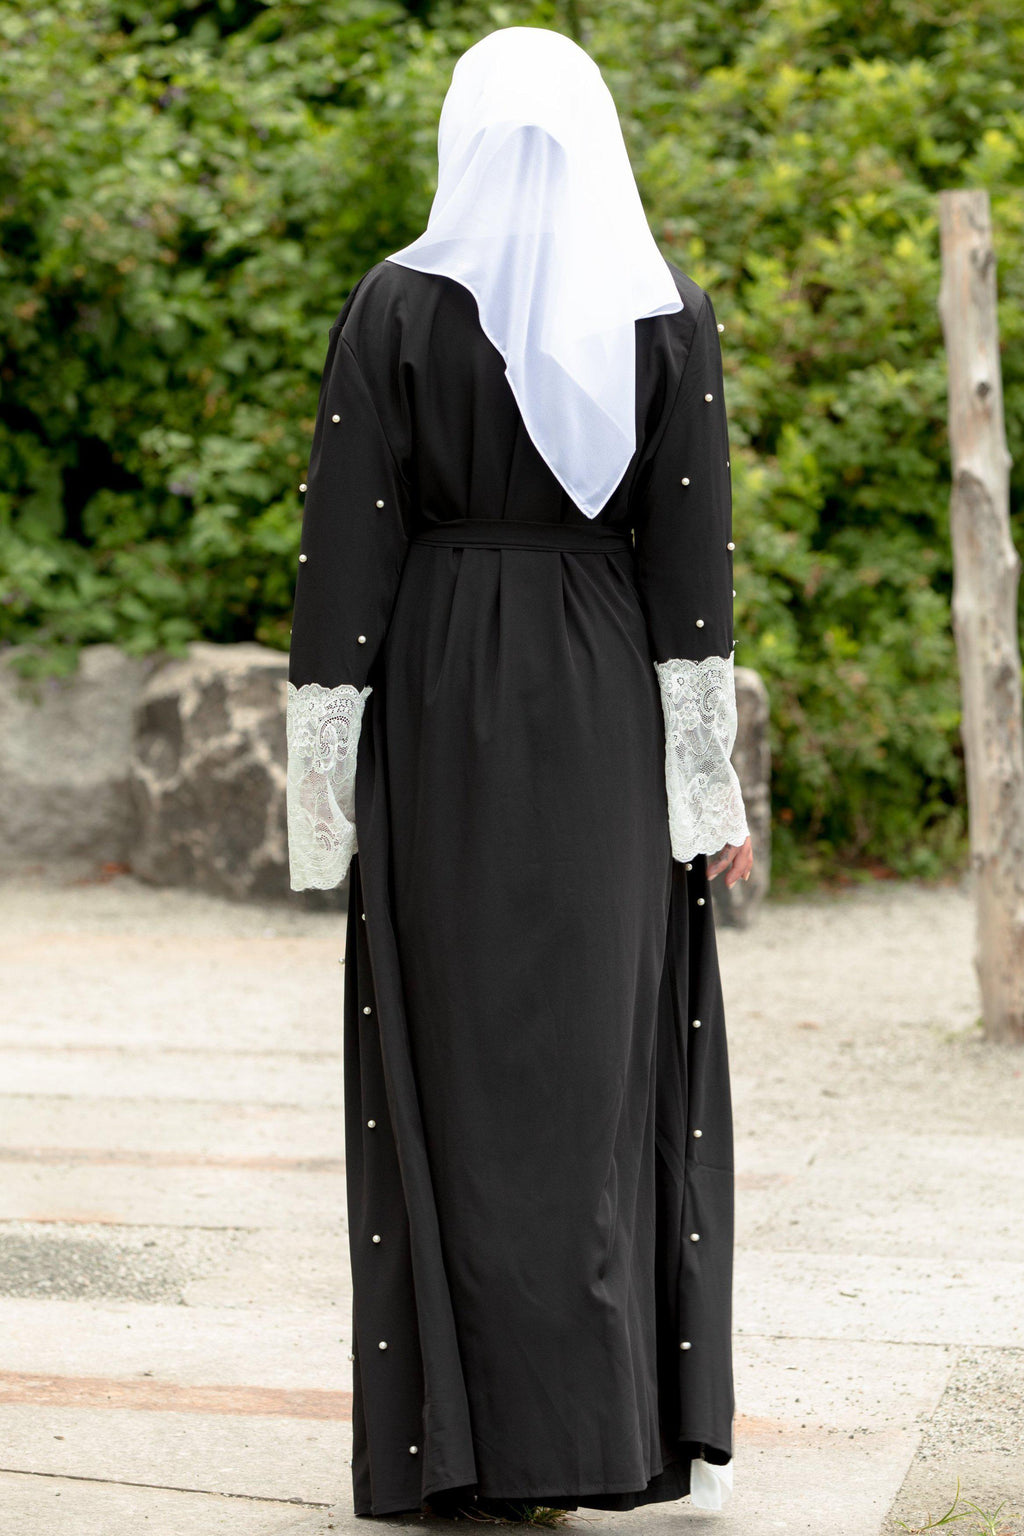 Black and White Pearl Open Front Abaya - Abaya, Hijabs, Jilbabs, on sale now at UrbanModesty.com